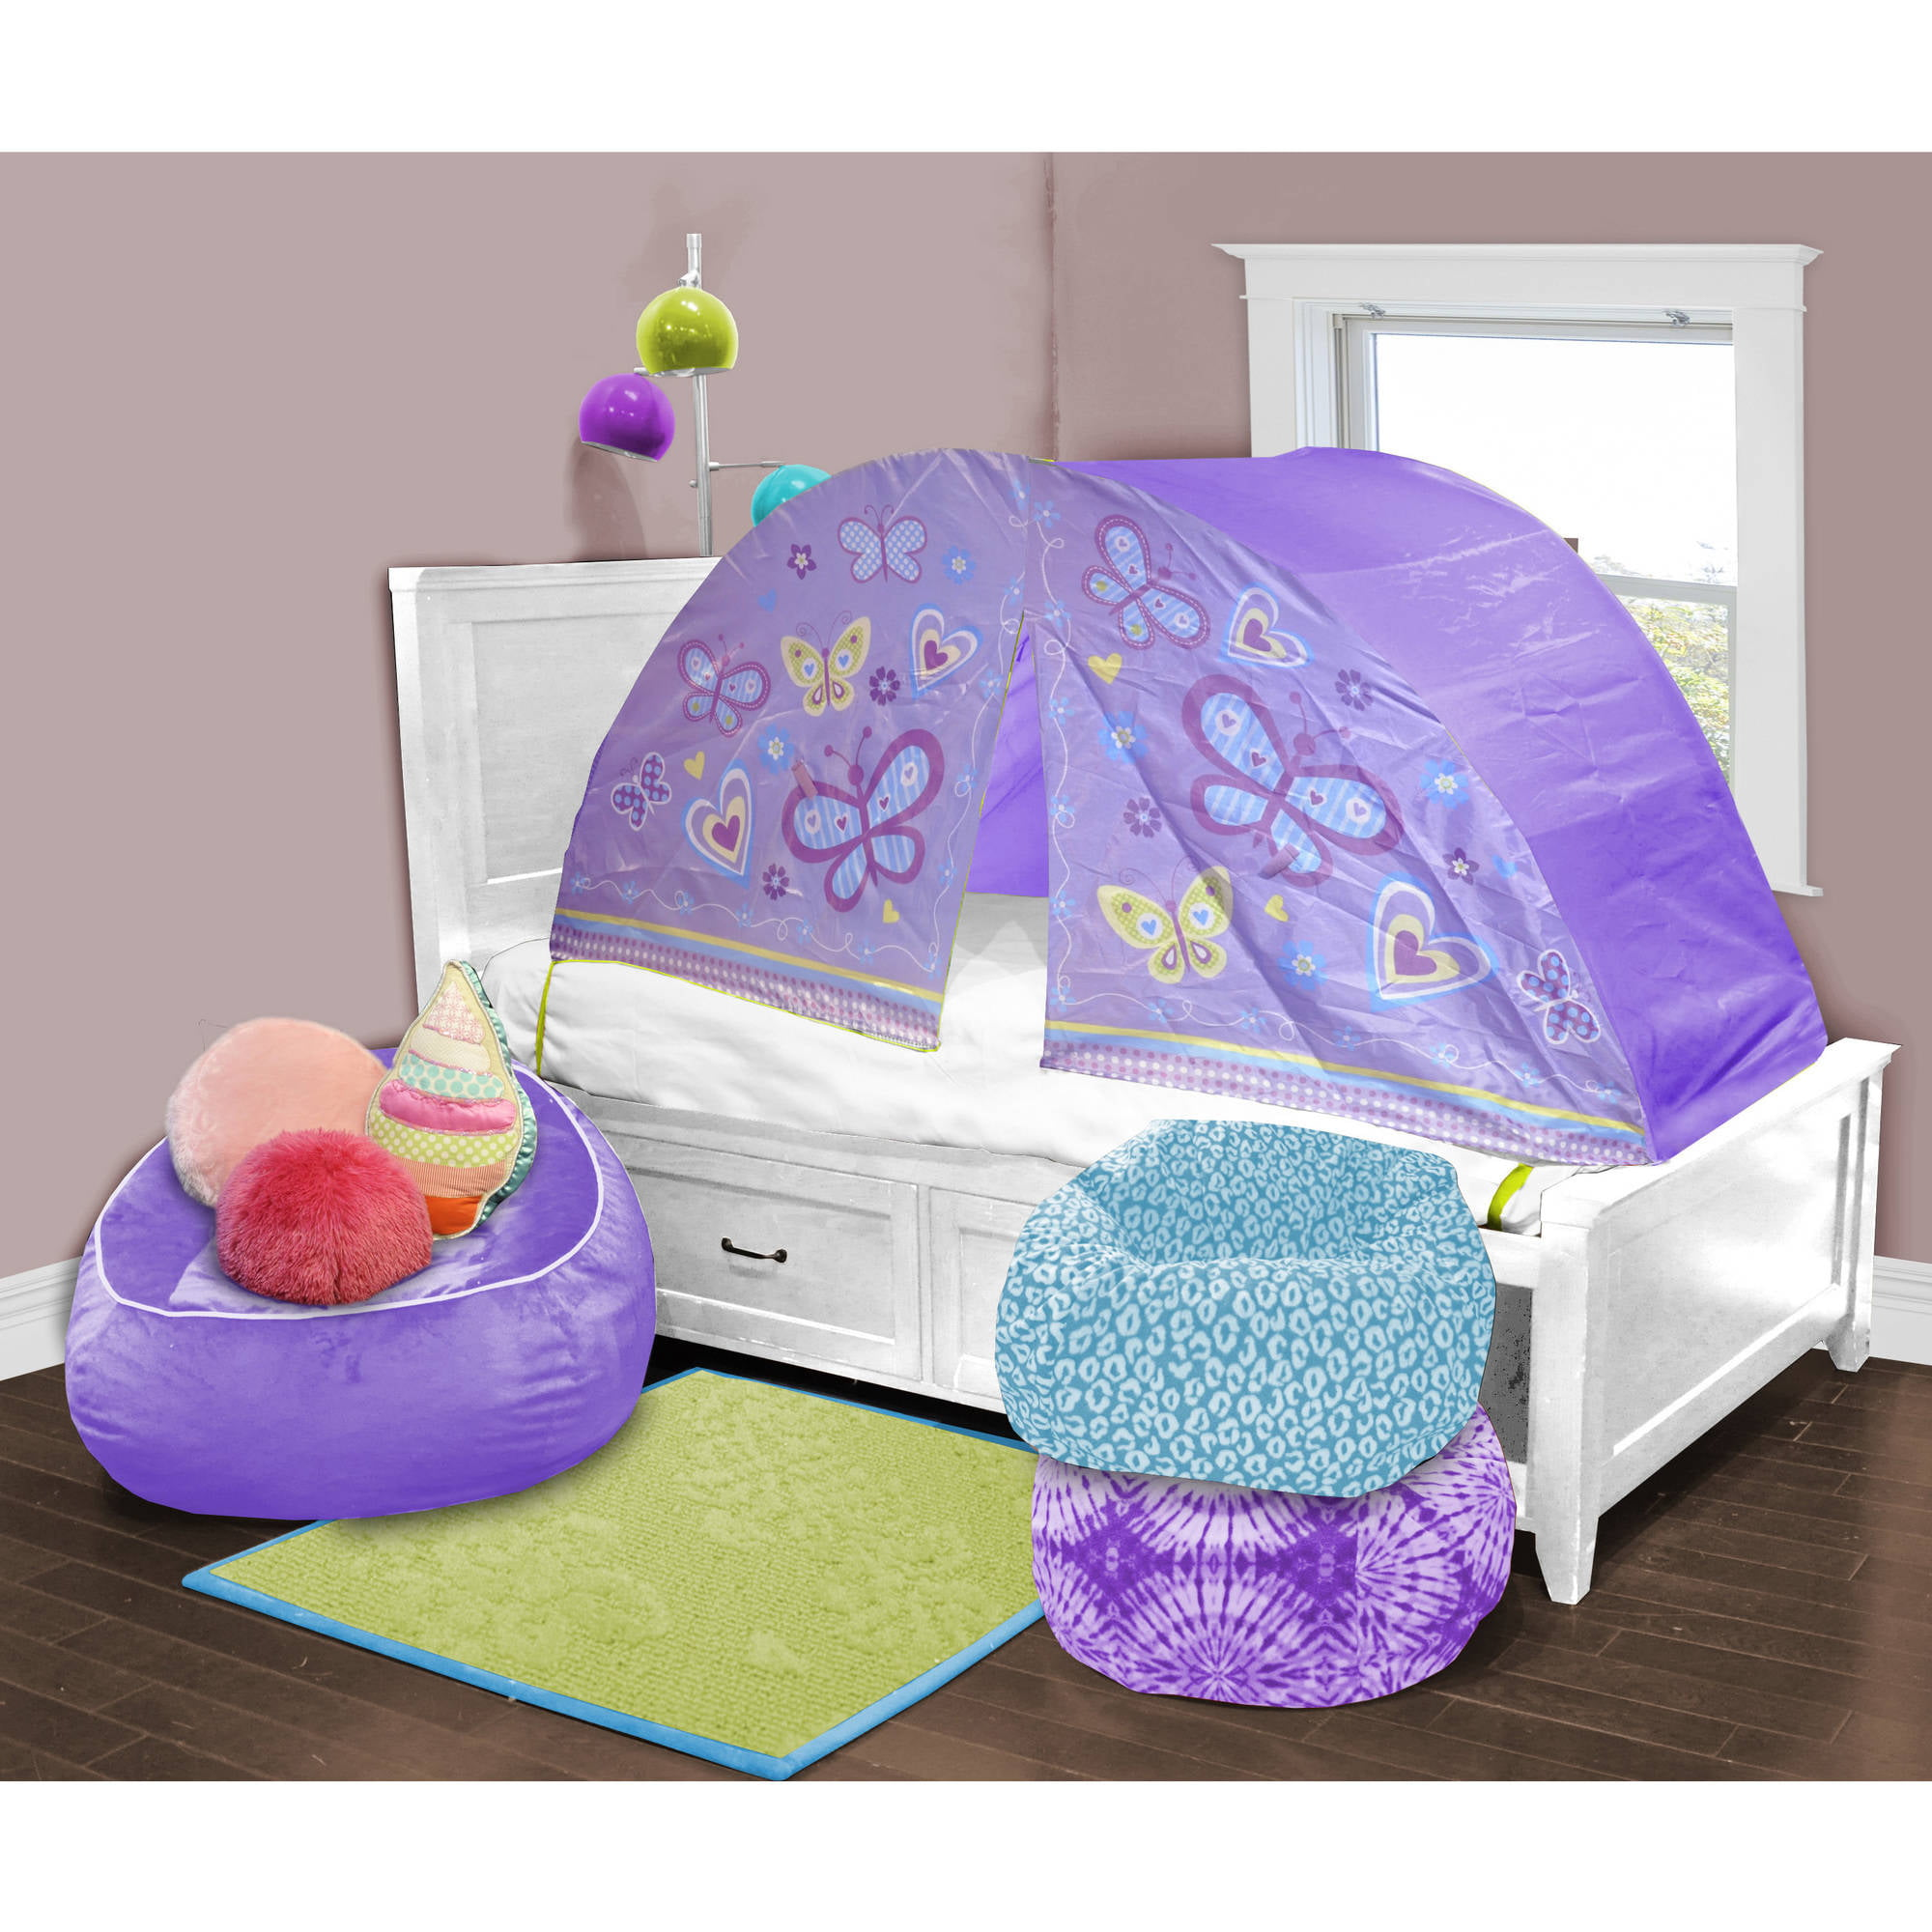 Kids Bedroom Tent kids scene lavender butterfly play bed tent - walmart